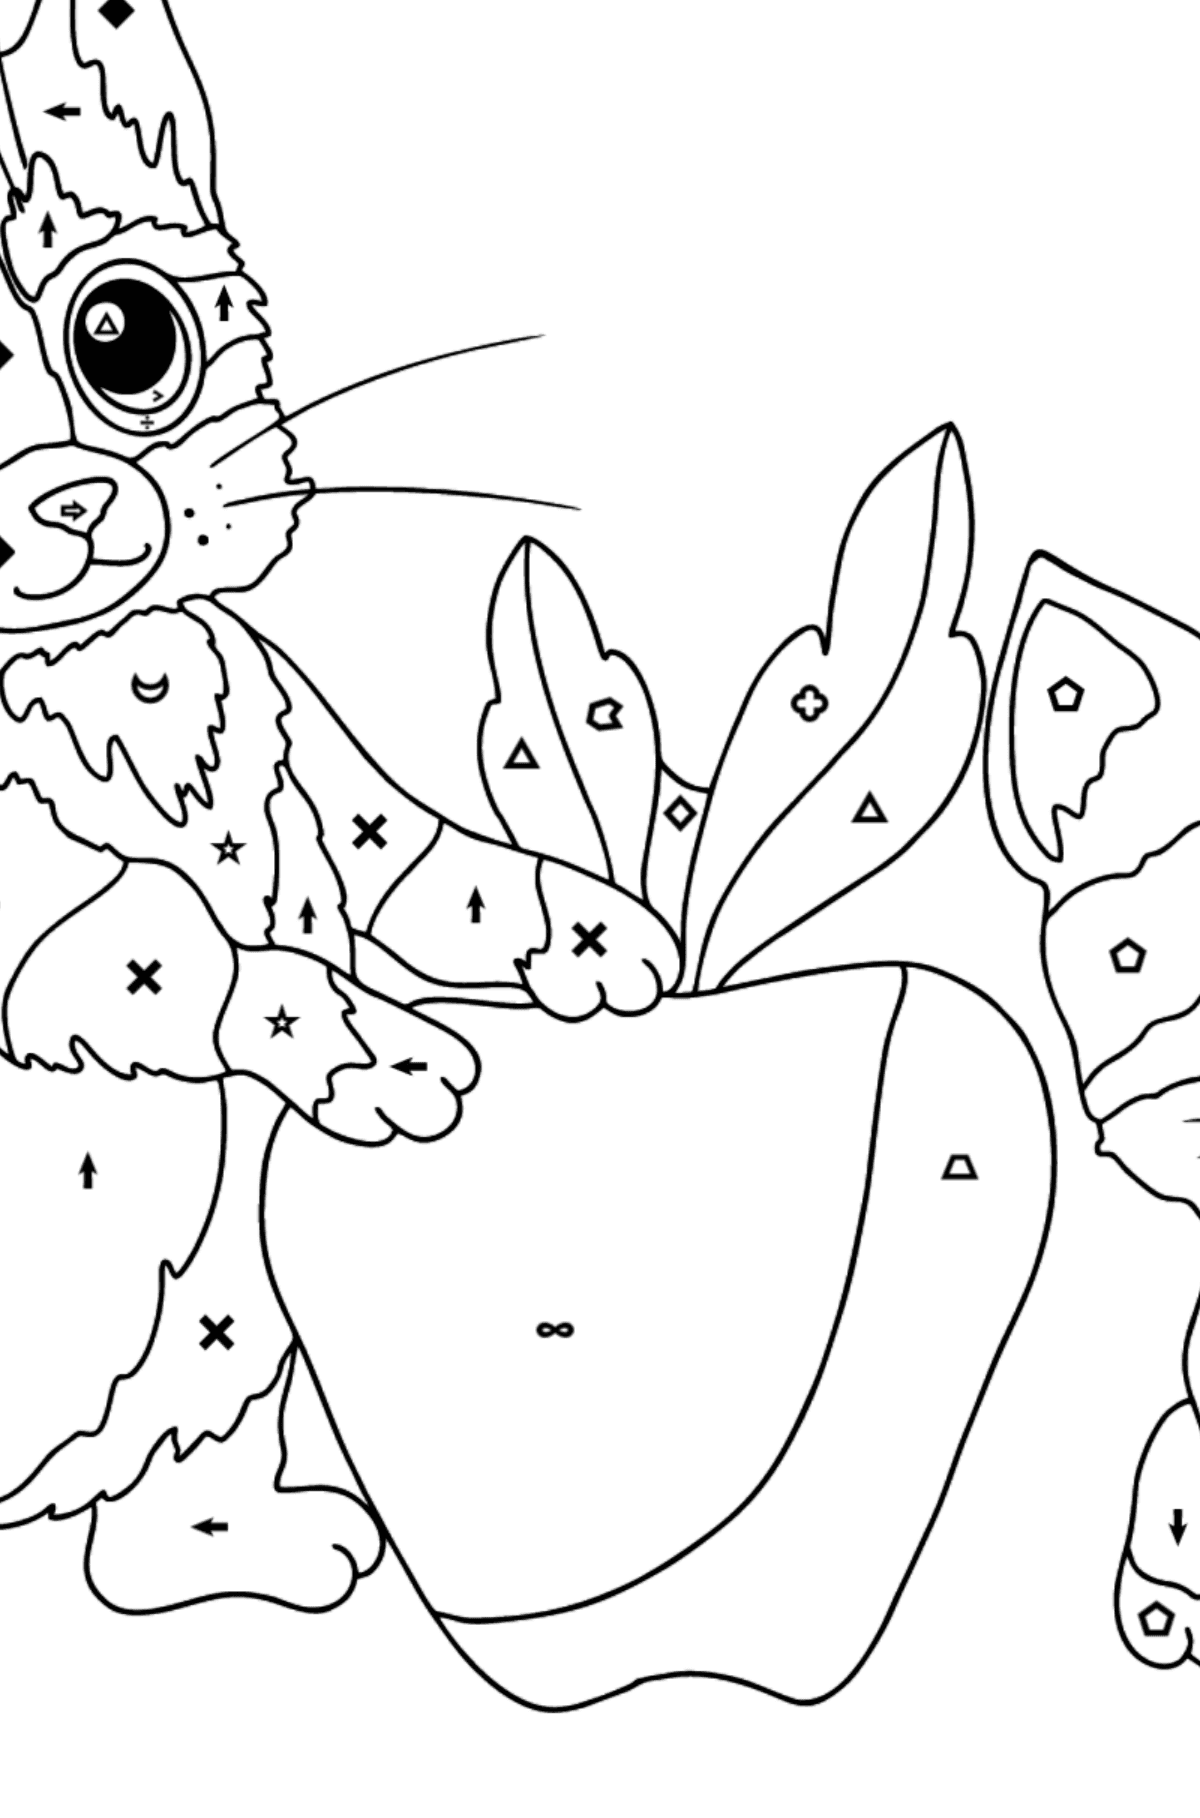 Coloring Page - Kittens are Having Fun with a Red Apple - Coloring by Symbols and Geometric Shapes for Kids